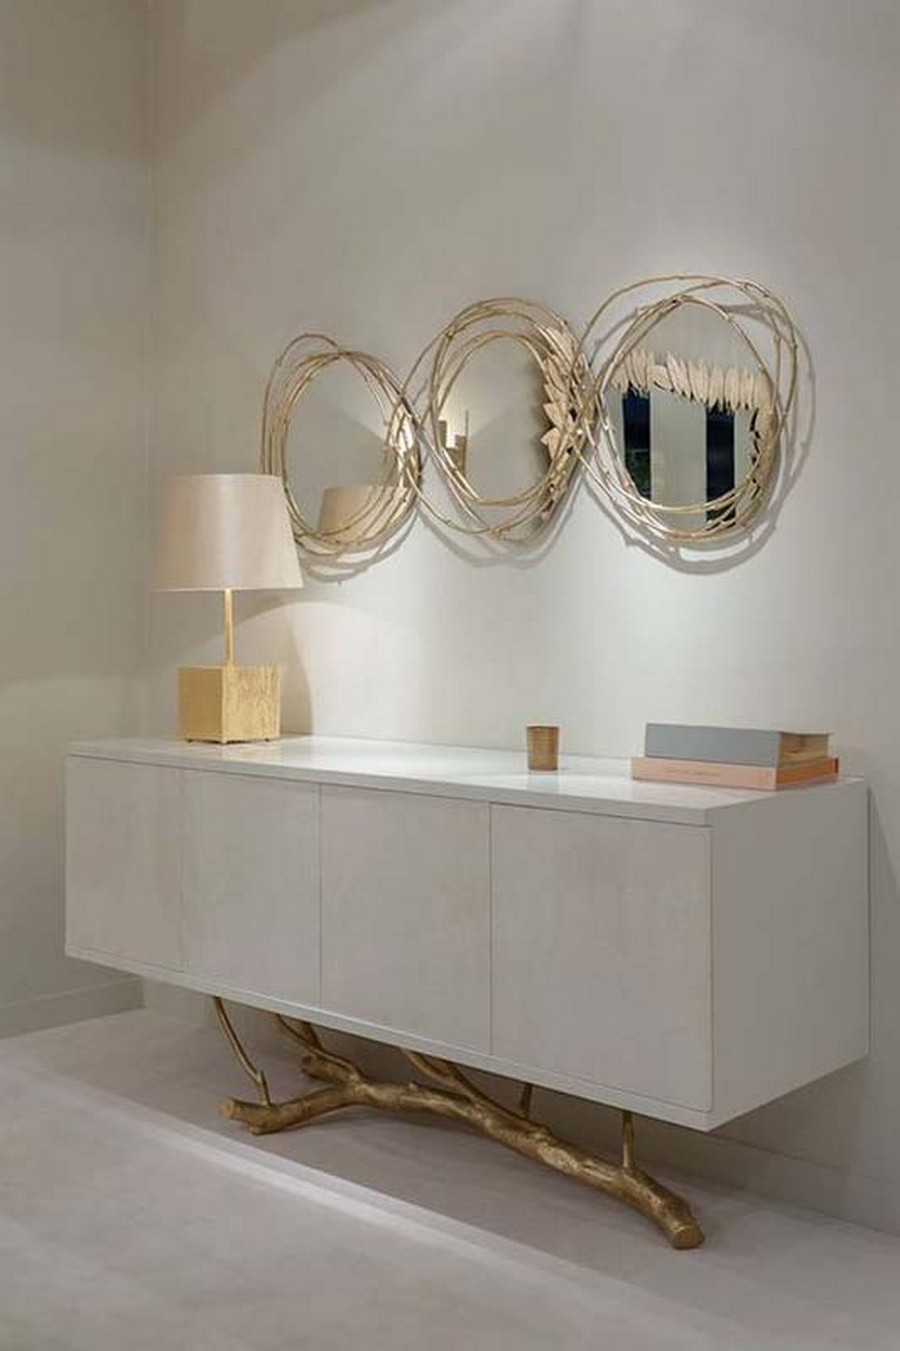 5 Luxury Furniture Brands To Find At The Inspiring Saintegina Store Luxury Furniture Brands 5 Luxury Furniture Brands To Find At The Inspiring Saintegina Store 5 Luxury Furniture Brands To Find At The Inspiring Saintegina Store 2